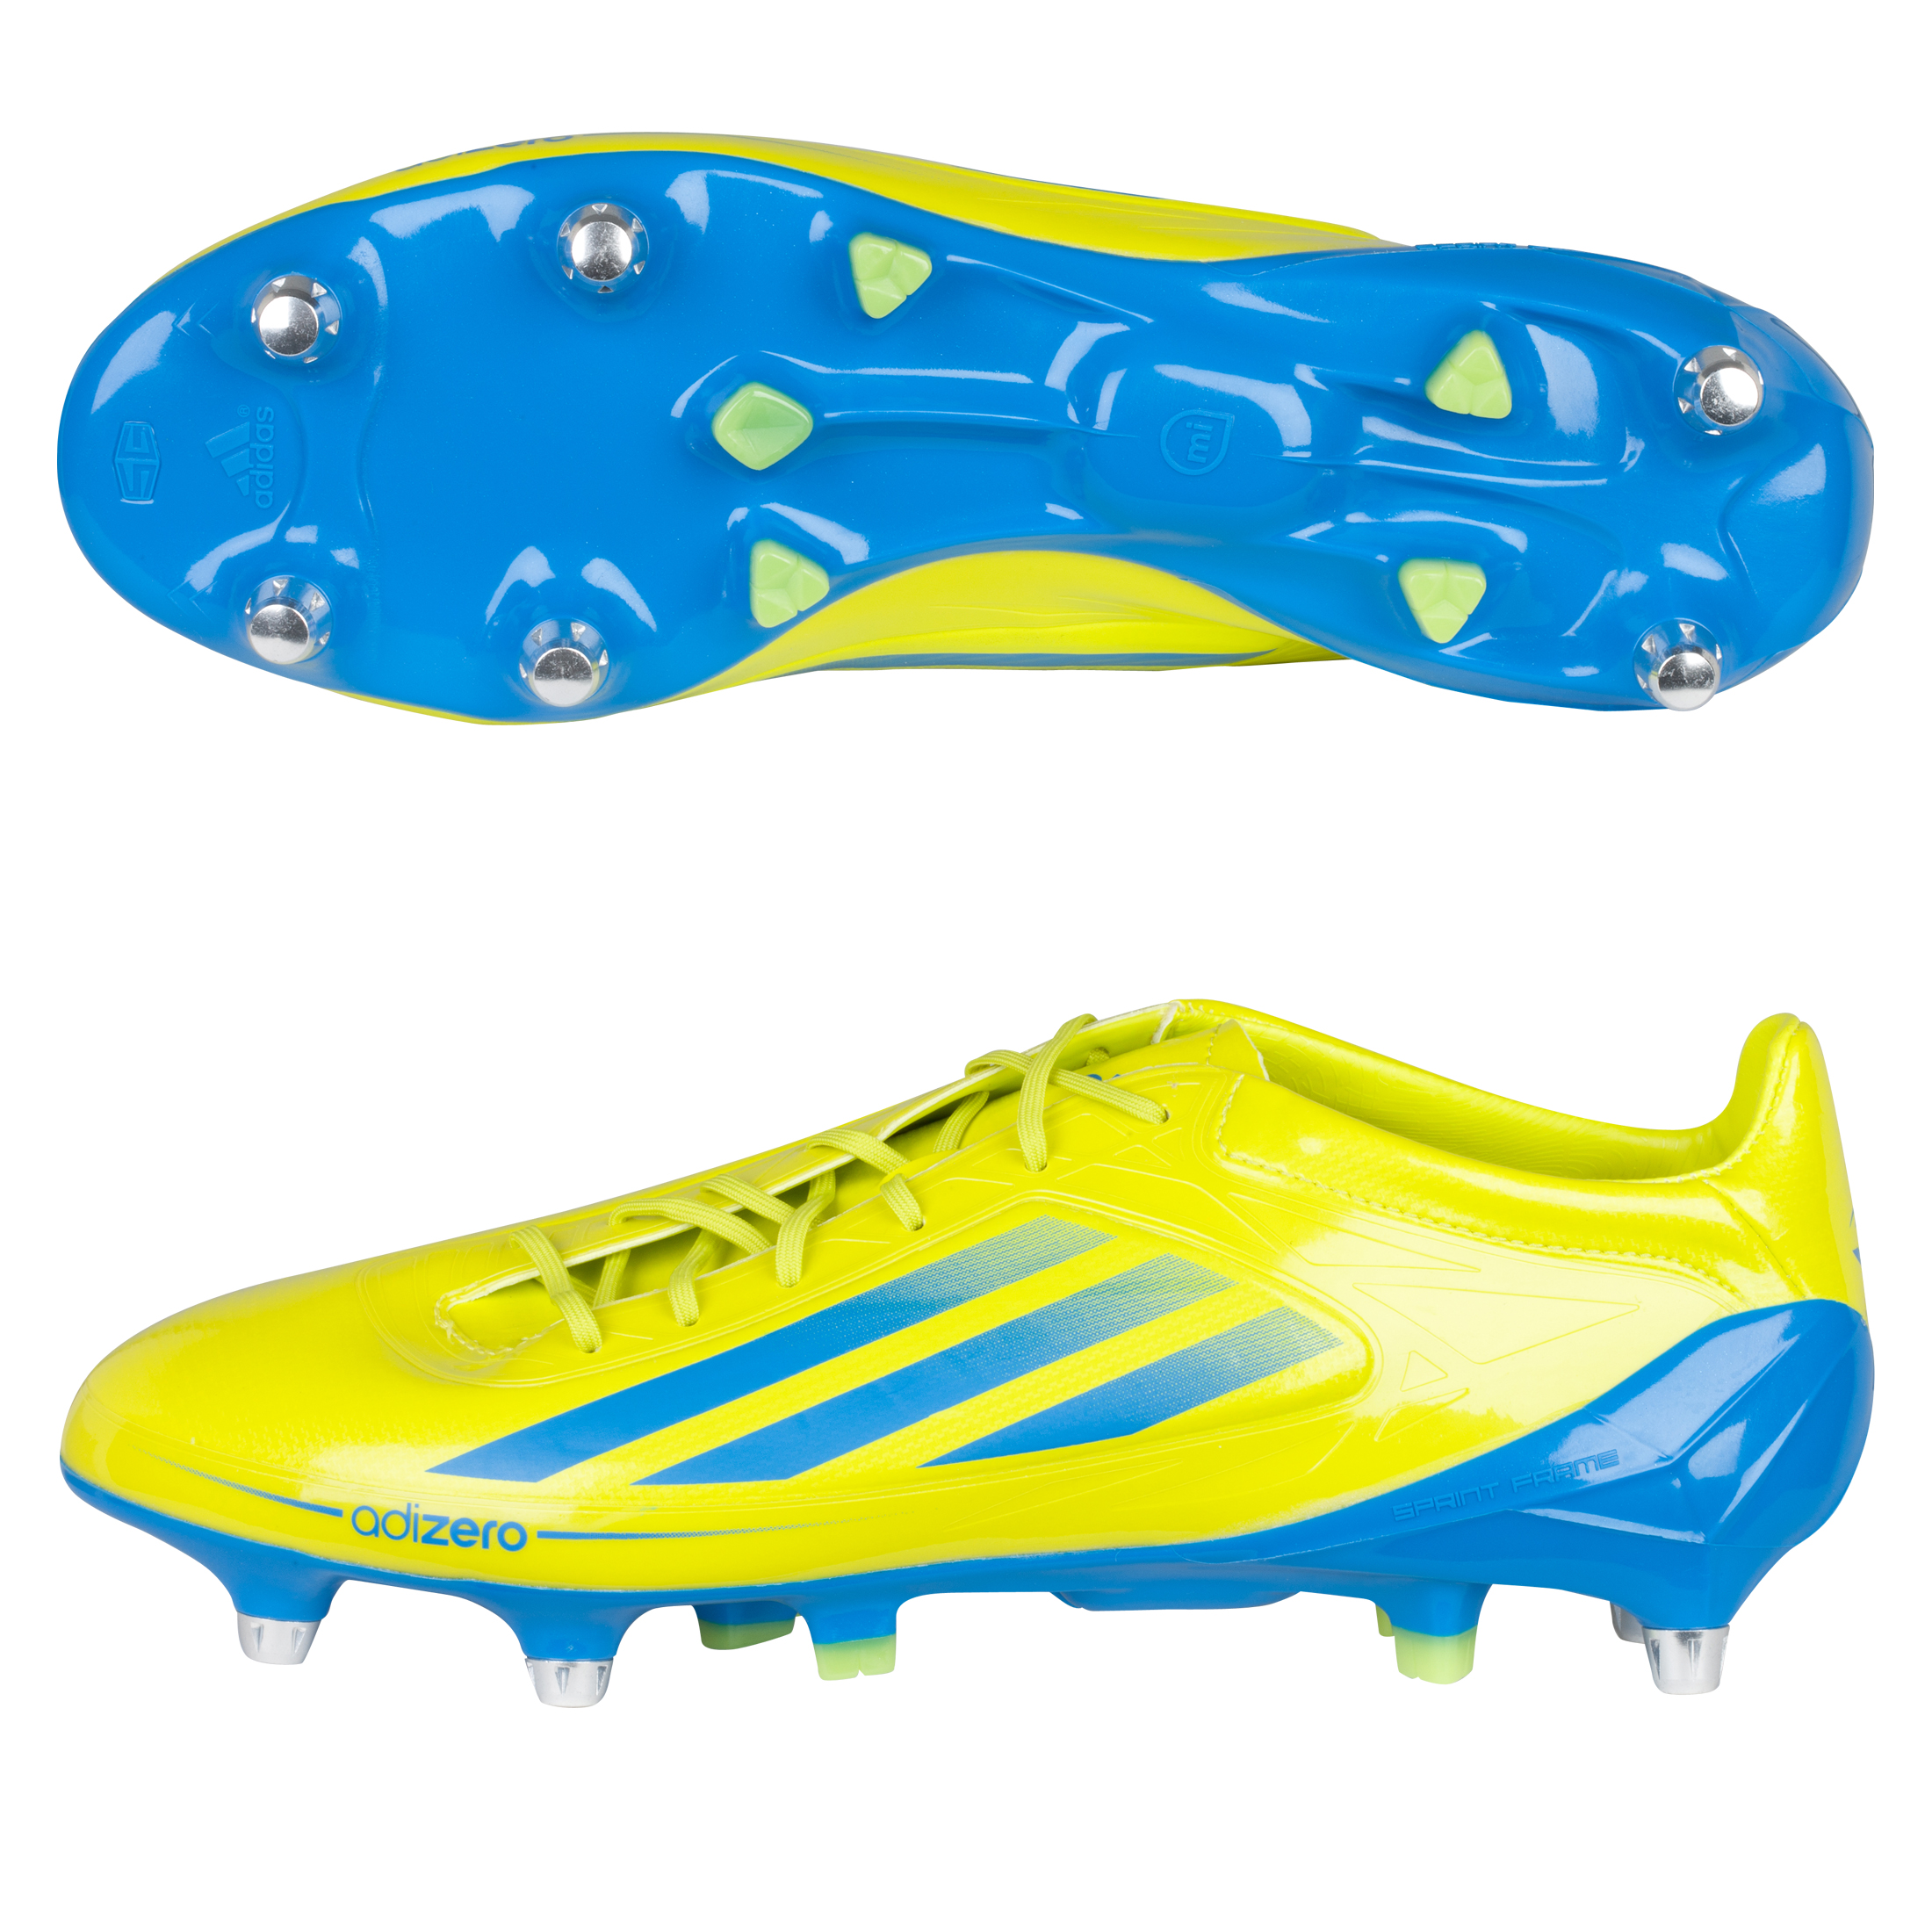 Adidas Adizero RS7 Pro II XTRX Soft Ground Rugby Boots - Lab Lime/Bright Blue